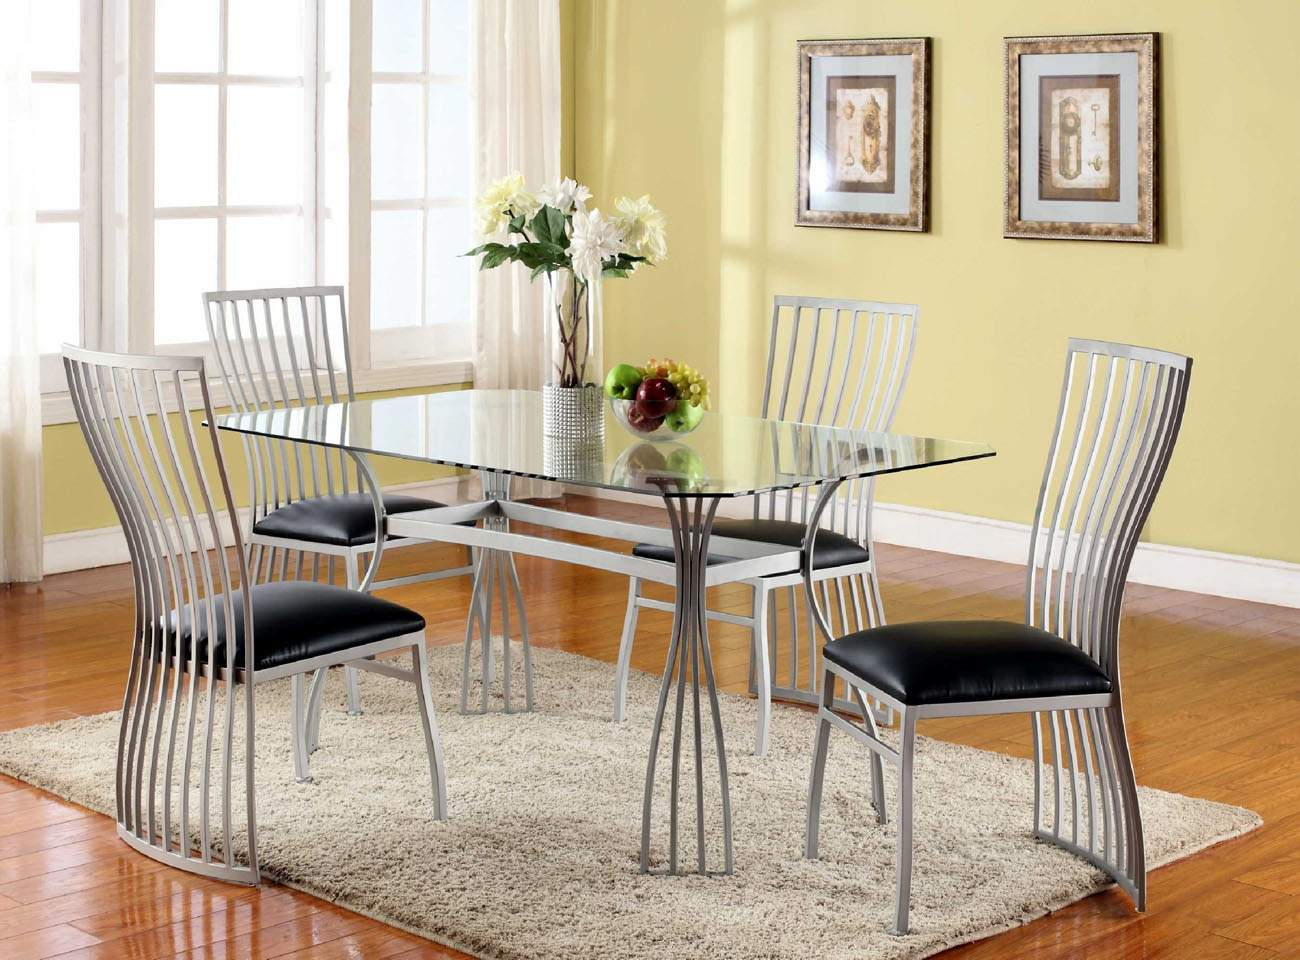 Graceful rectangular clear glass top leather designer 5 pcs table and chairs glendale arizona chaile - Designer glass dining tables ...